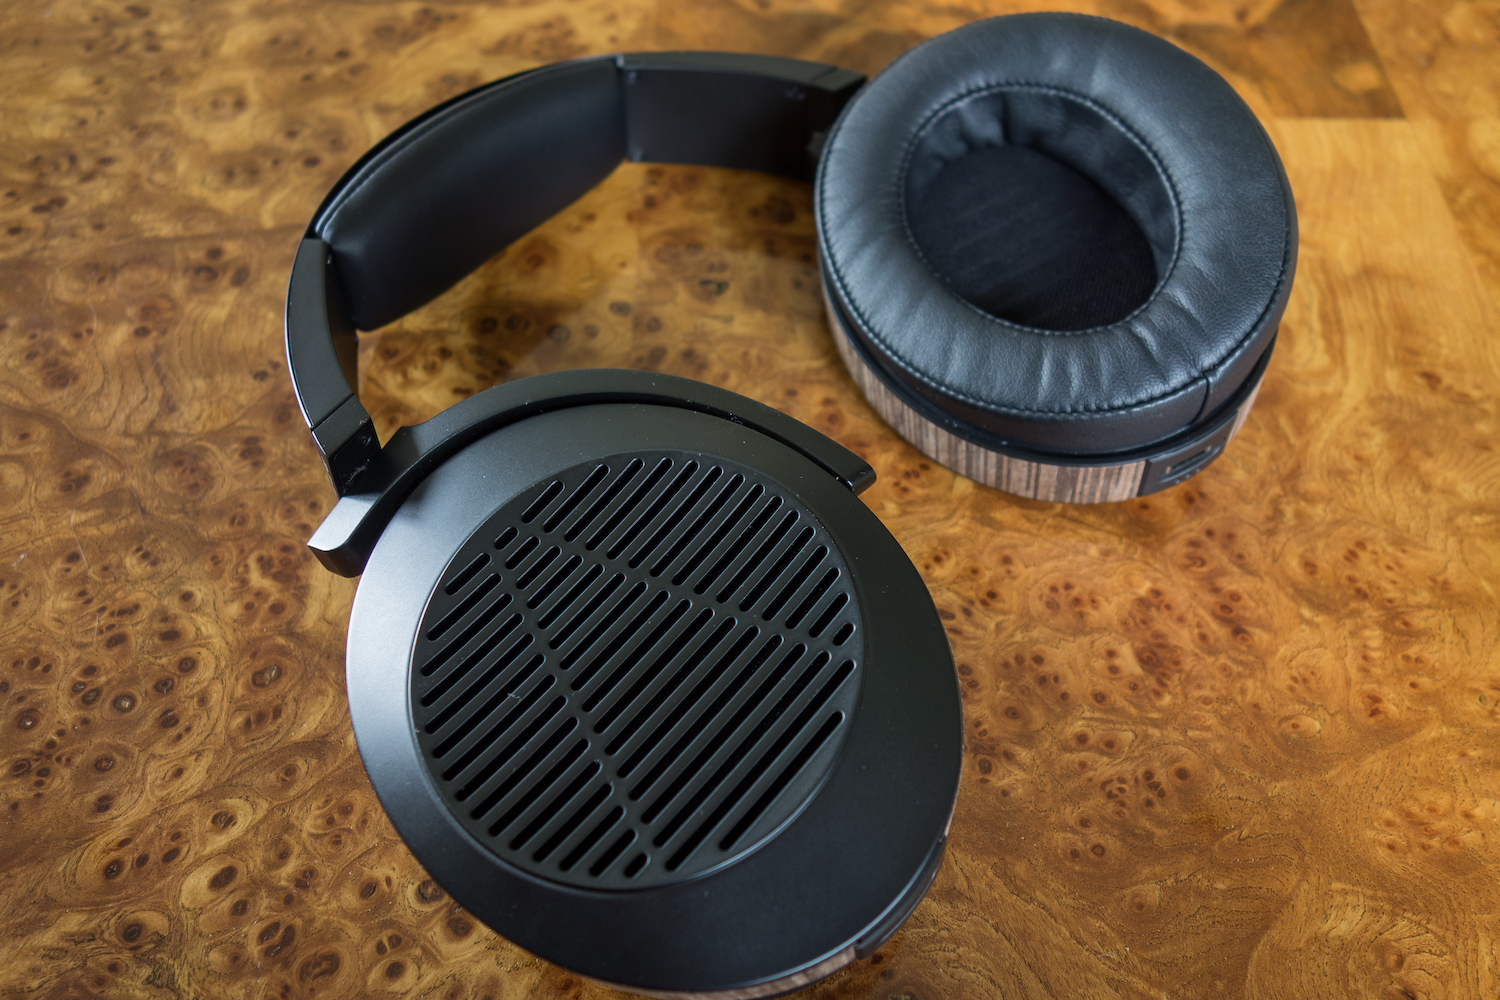 Audeze have designed the EL8 to be there best looking headphone yet.